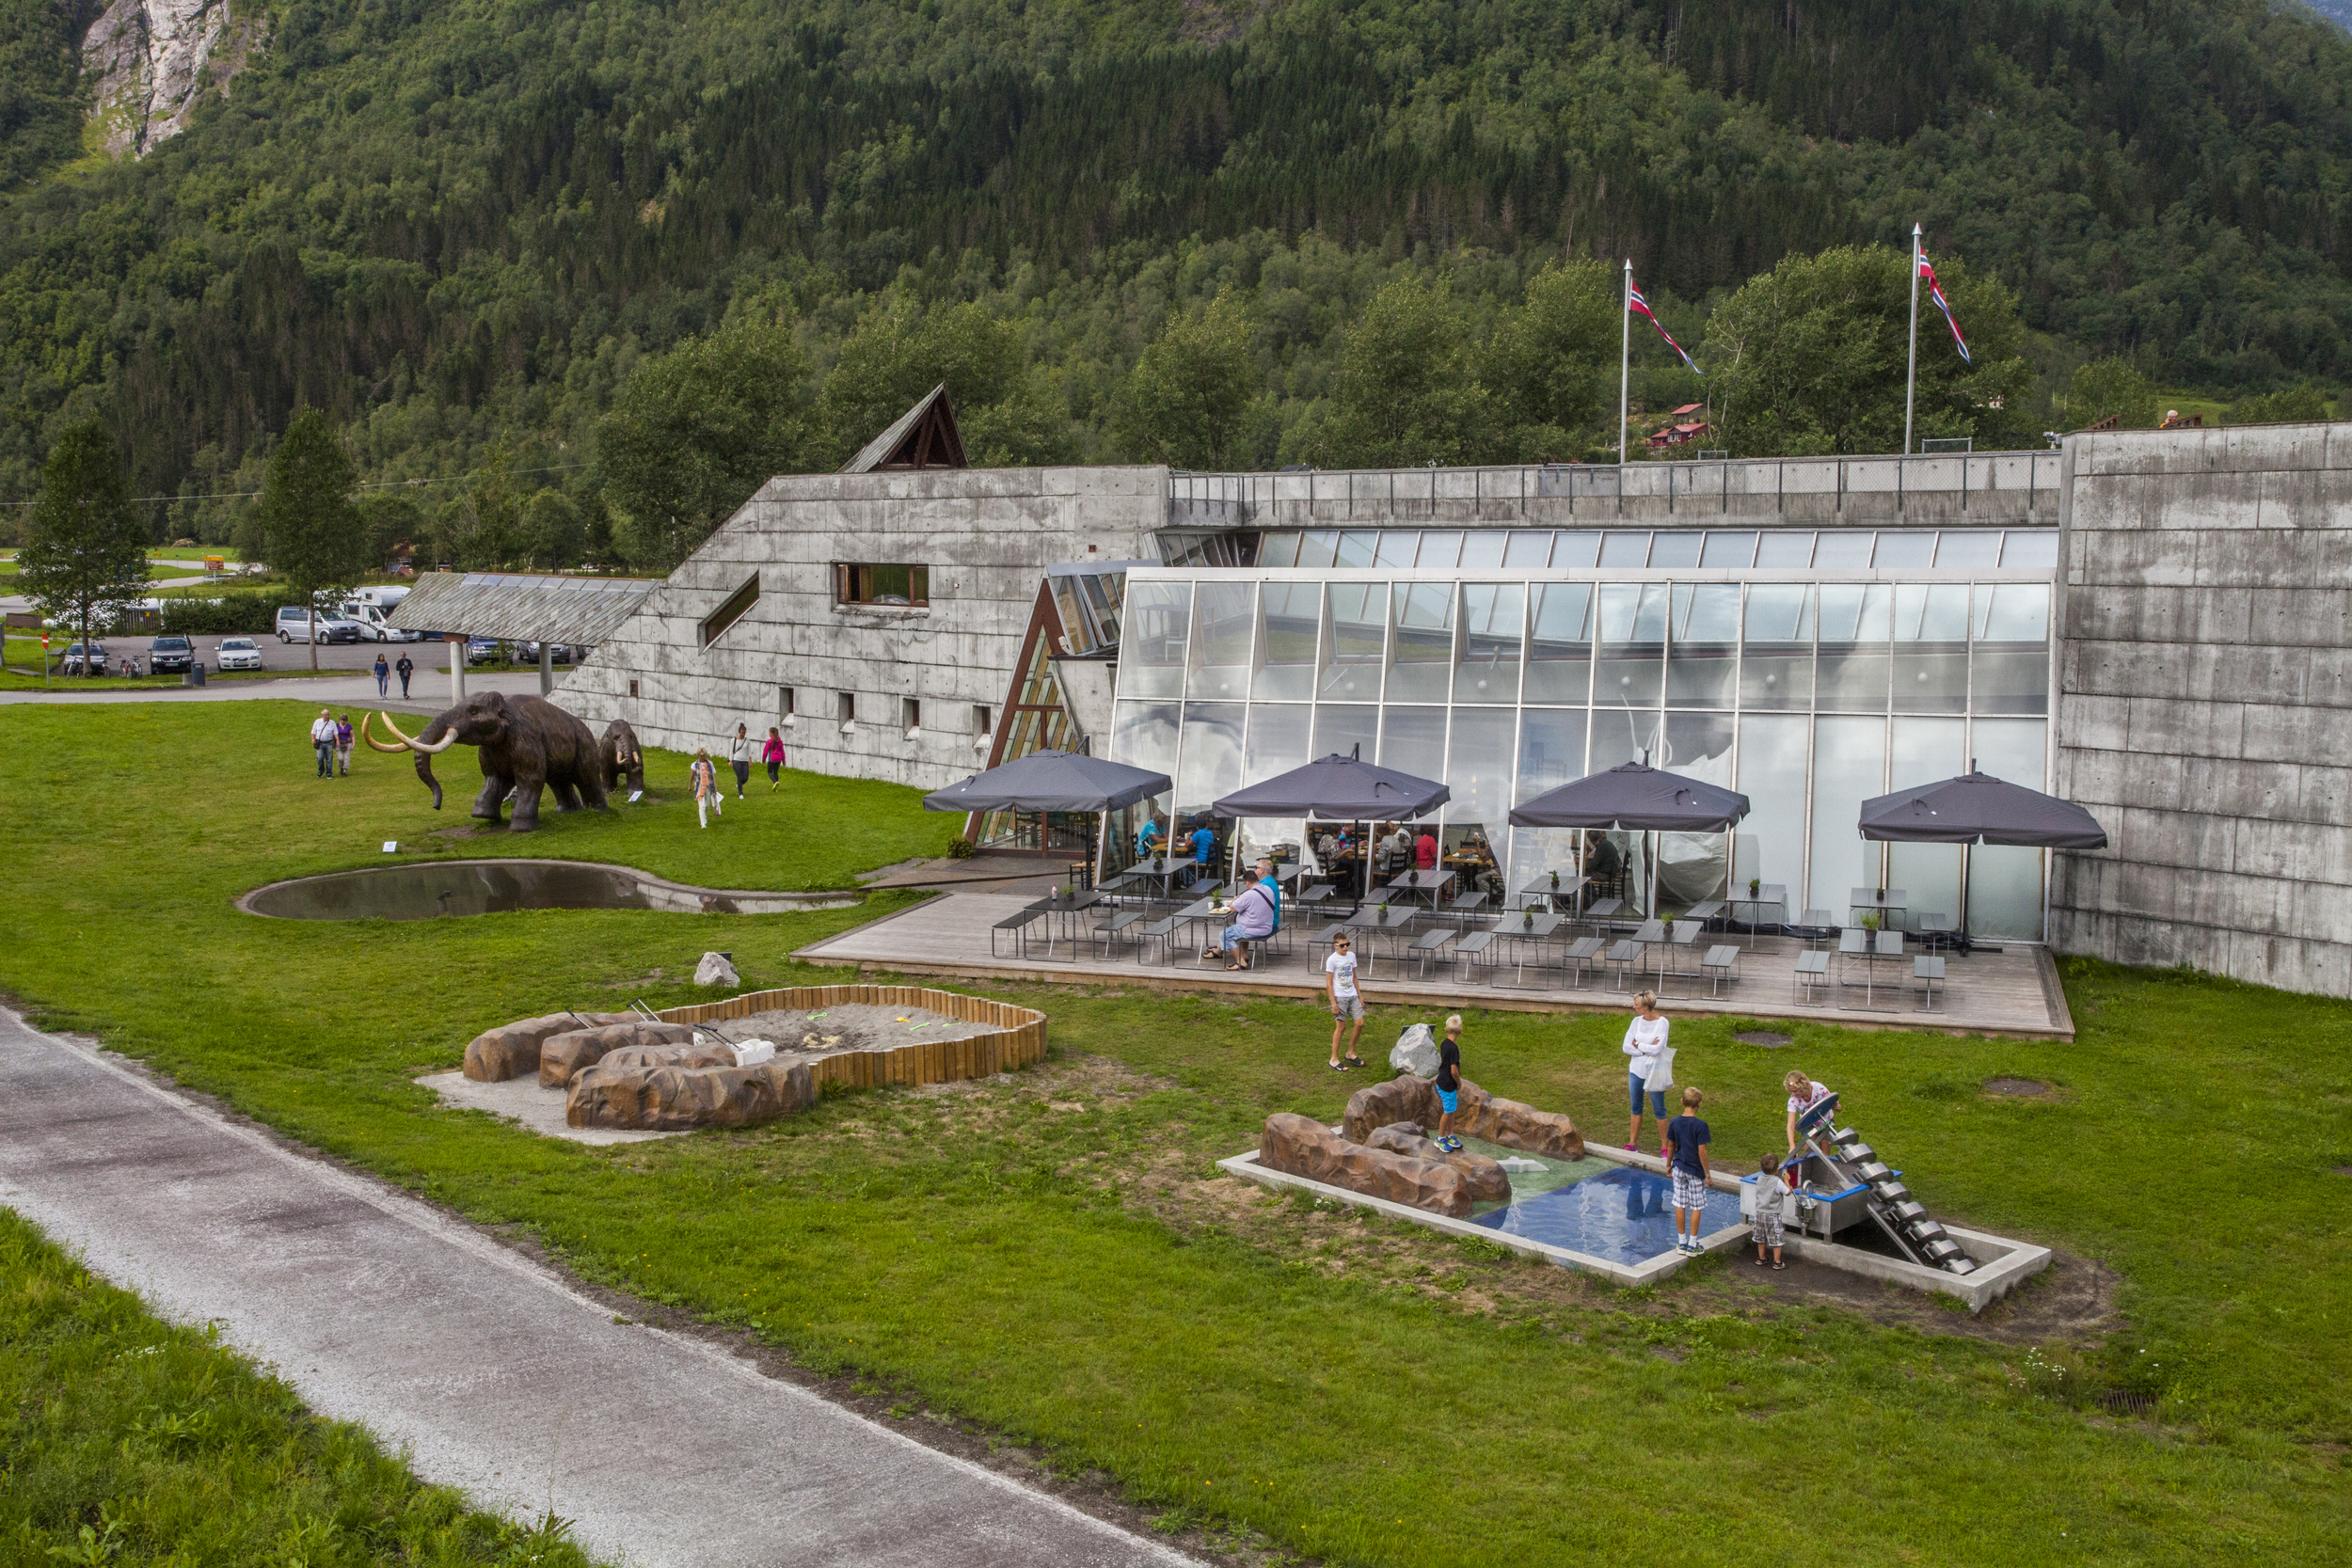 The outdoors area with the Educational Playground.Photo: Gaute Dvergsdal Bøyum.